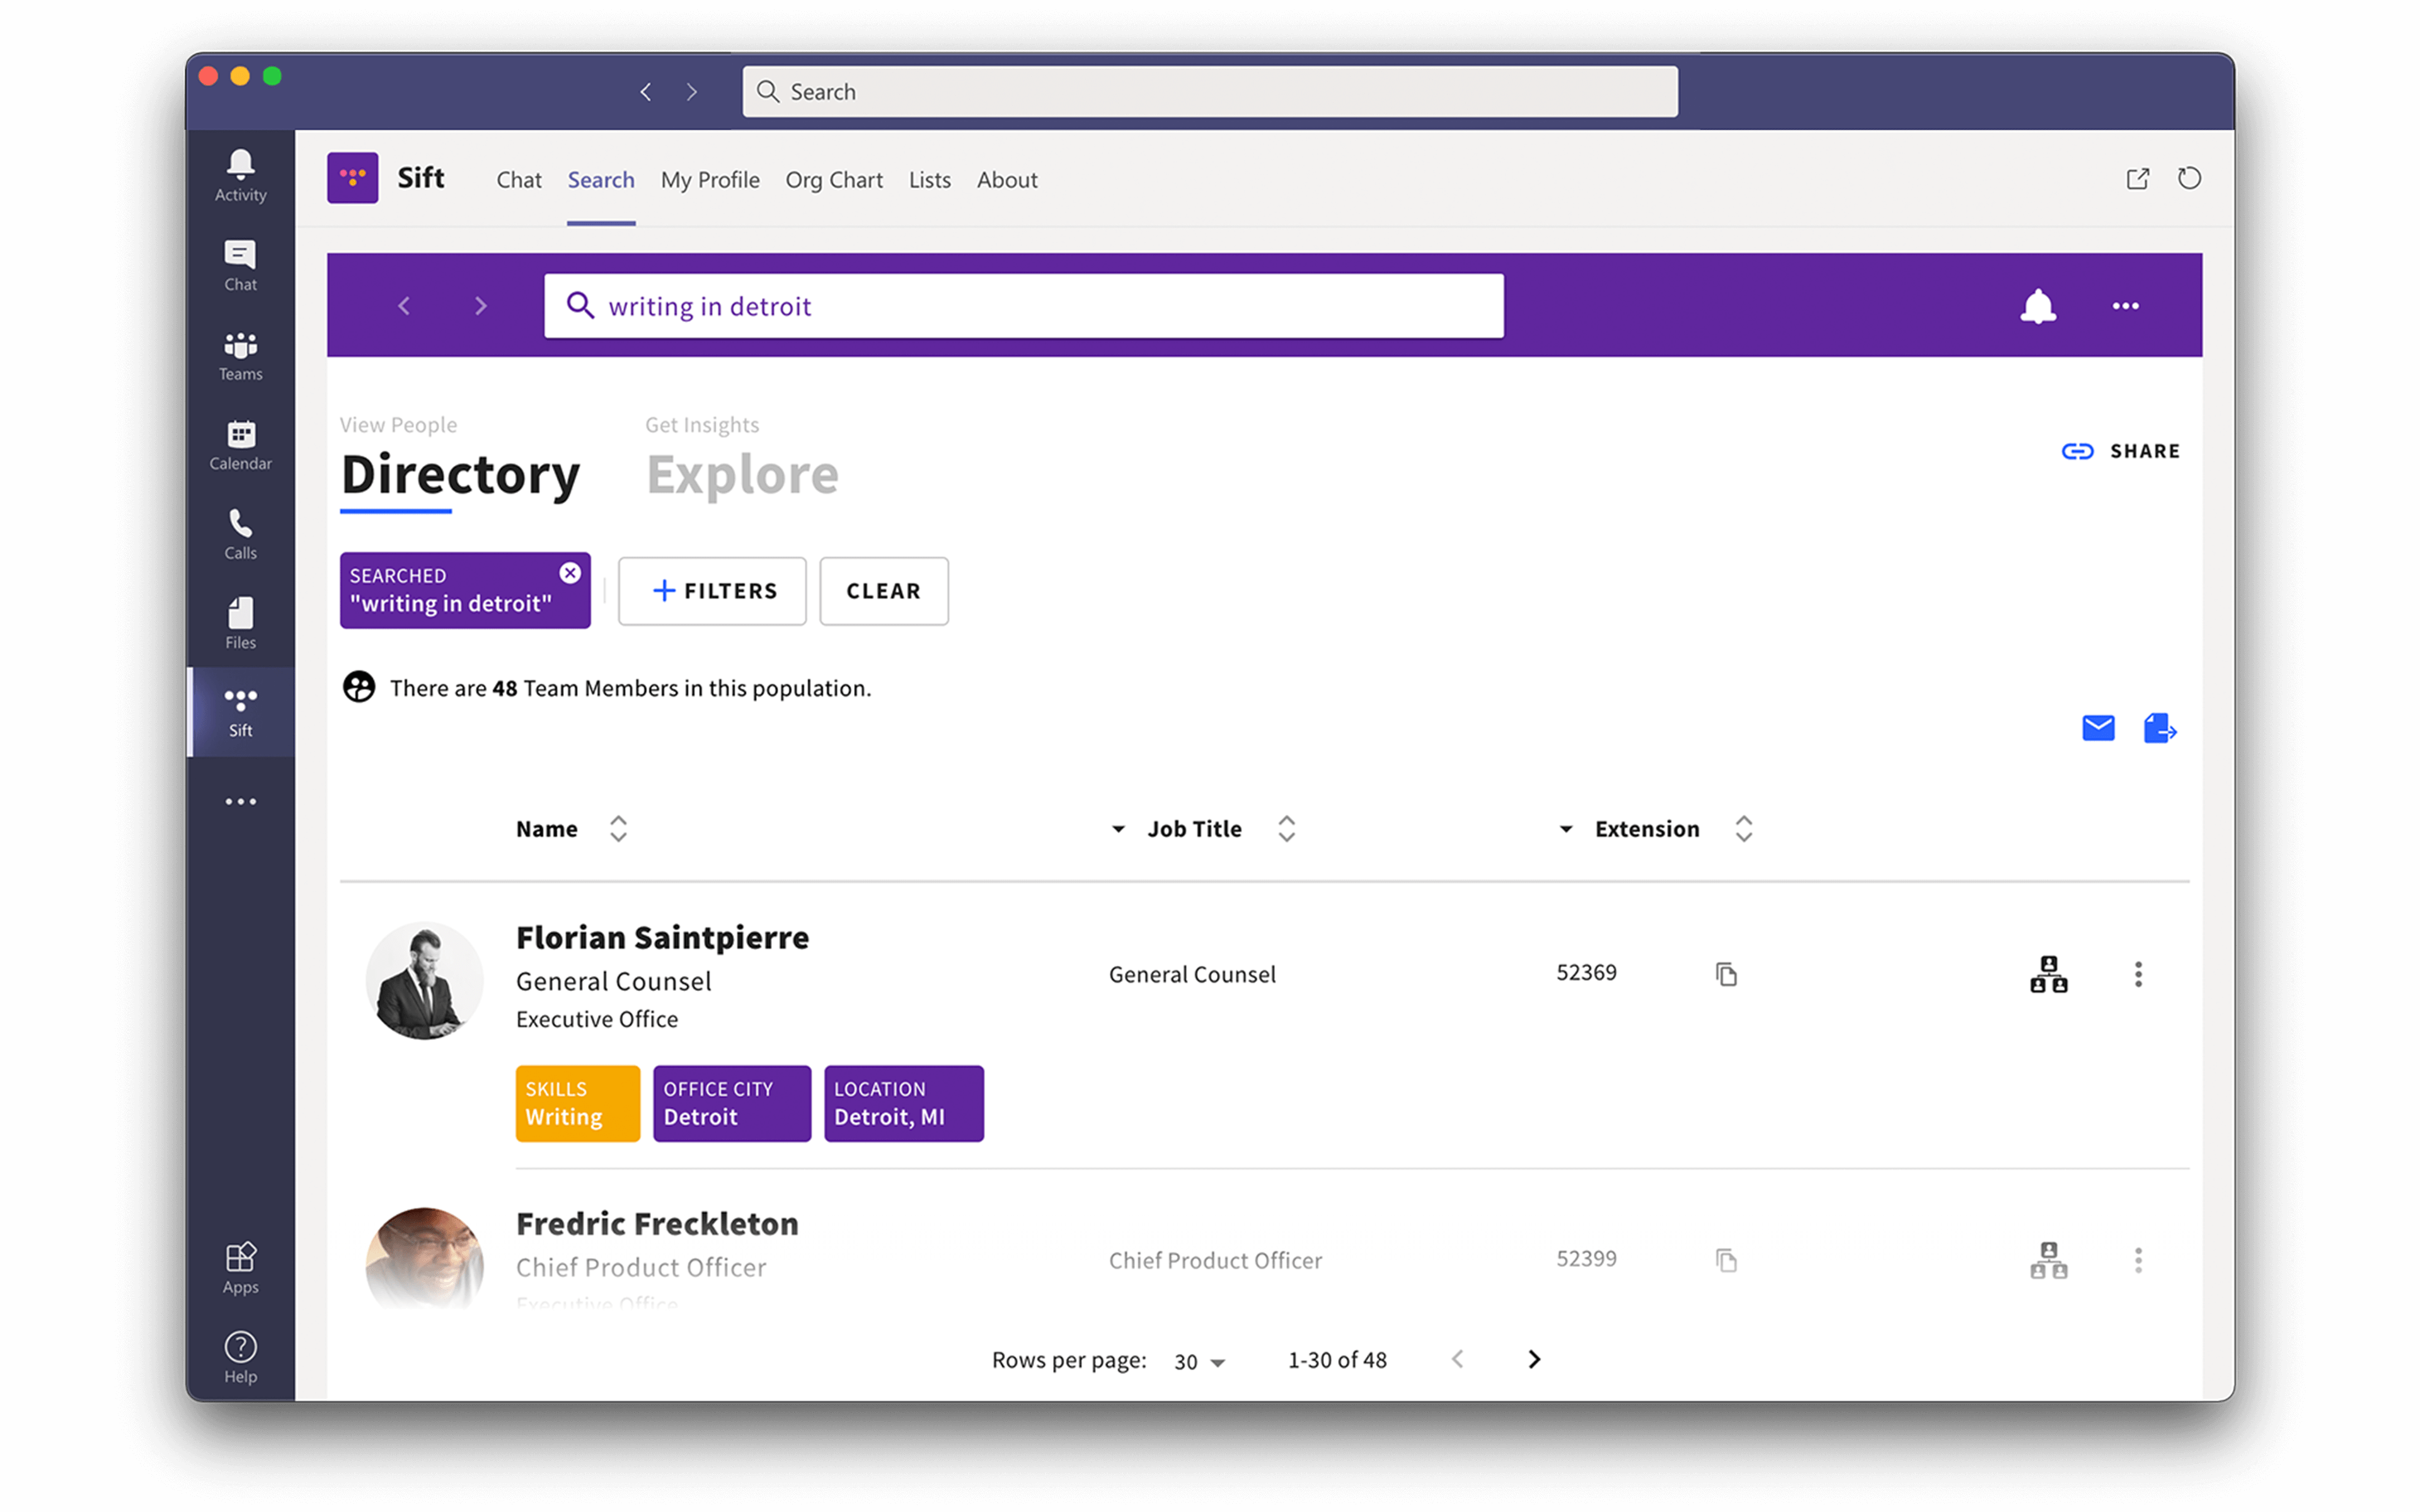 Microsoft Teams with Sift employee directory view